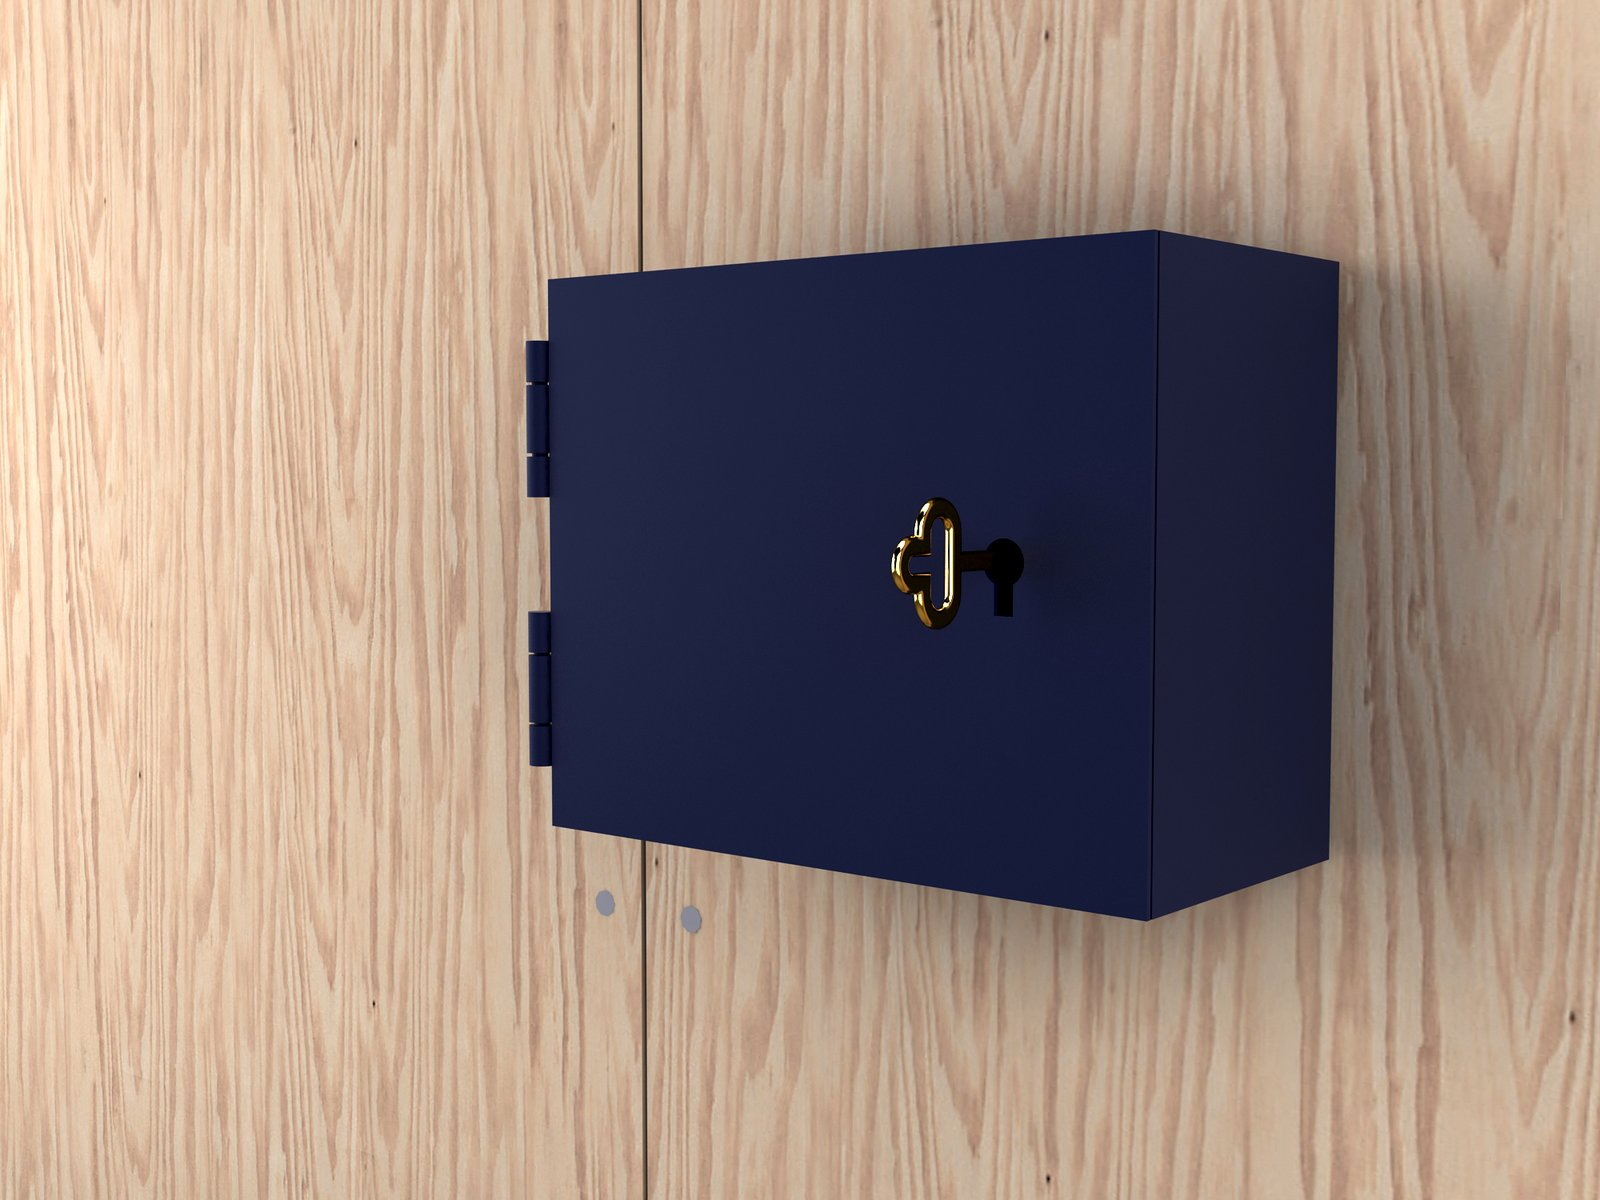 Architect and designer Jonas Wagell has drawn inspiration from bank safe deposit boxes for his key cabinet Vault for Designtorget. The frame is in color-coated steel, while the brass handle is shaped like a old-fashioned key.  On the Scene at Stockholm Design Week 2013 by Marianne Johnsgård